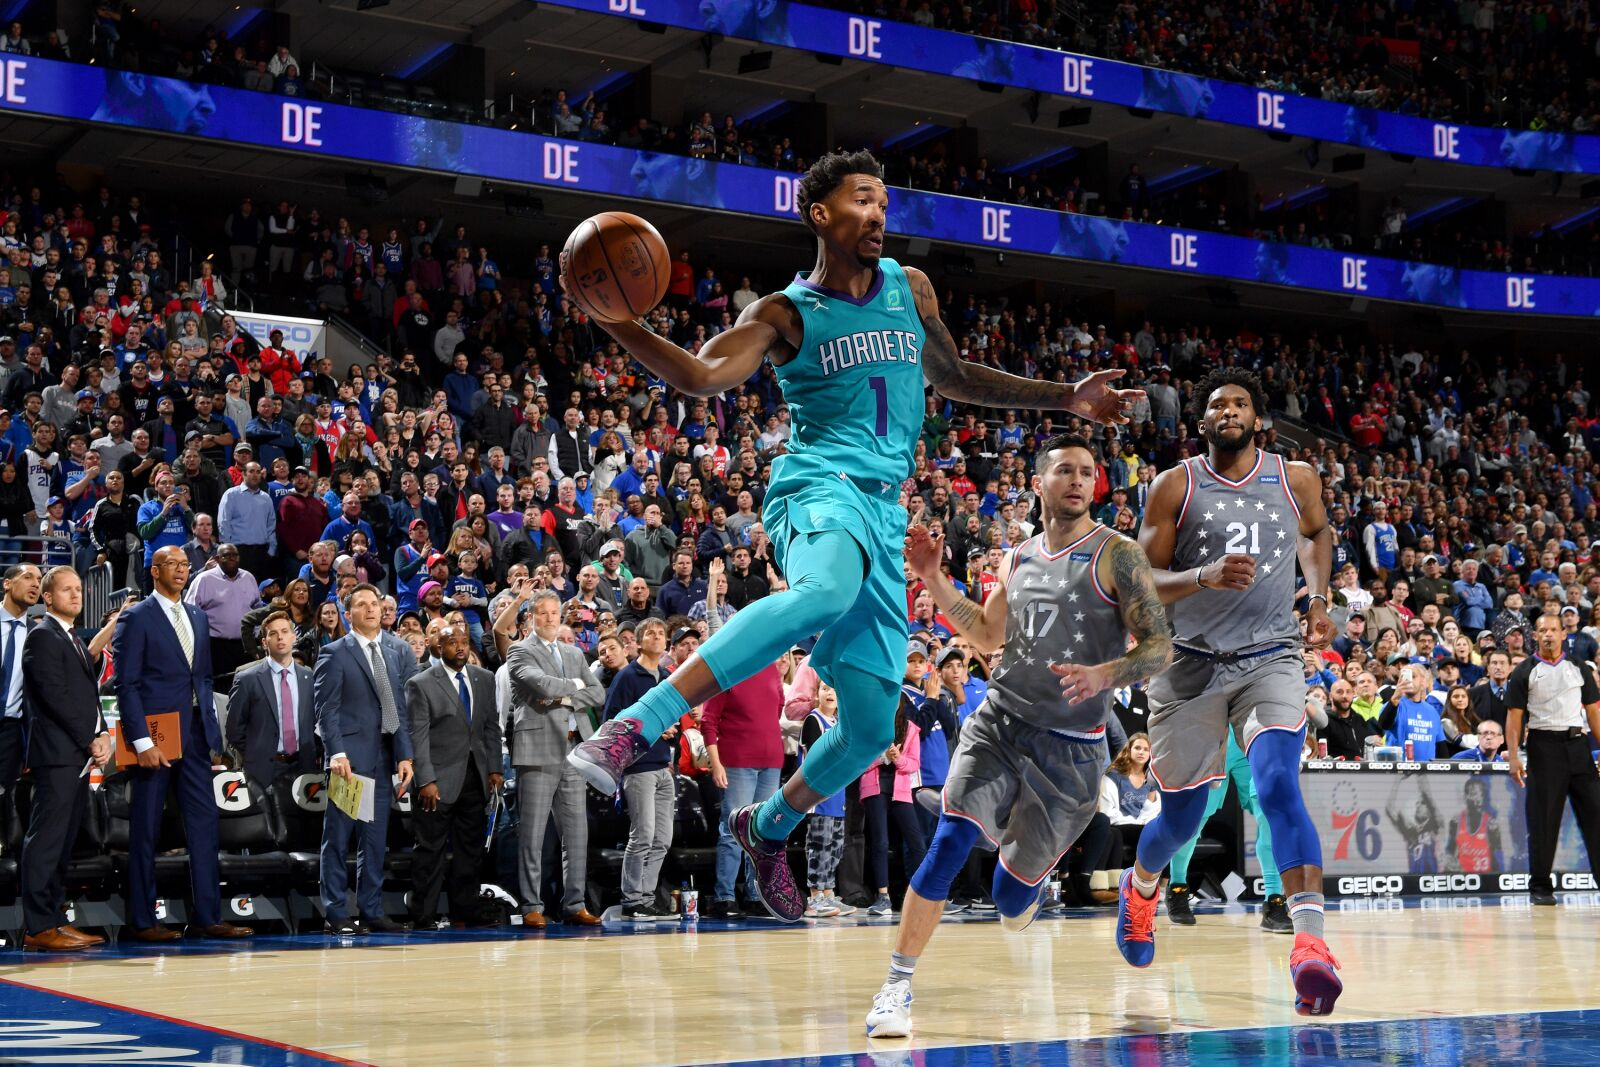 Charlotte Hornets to take on Philadelphia 76ers in Preseason